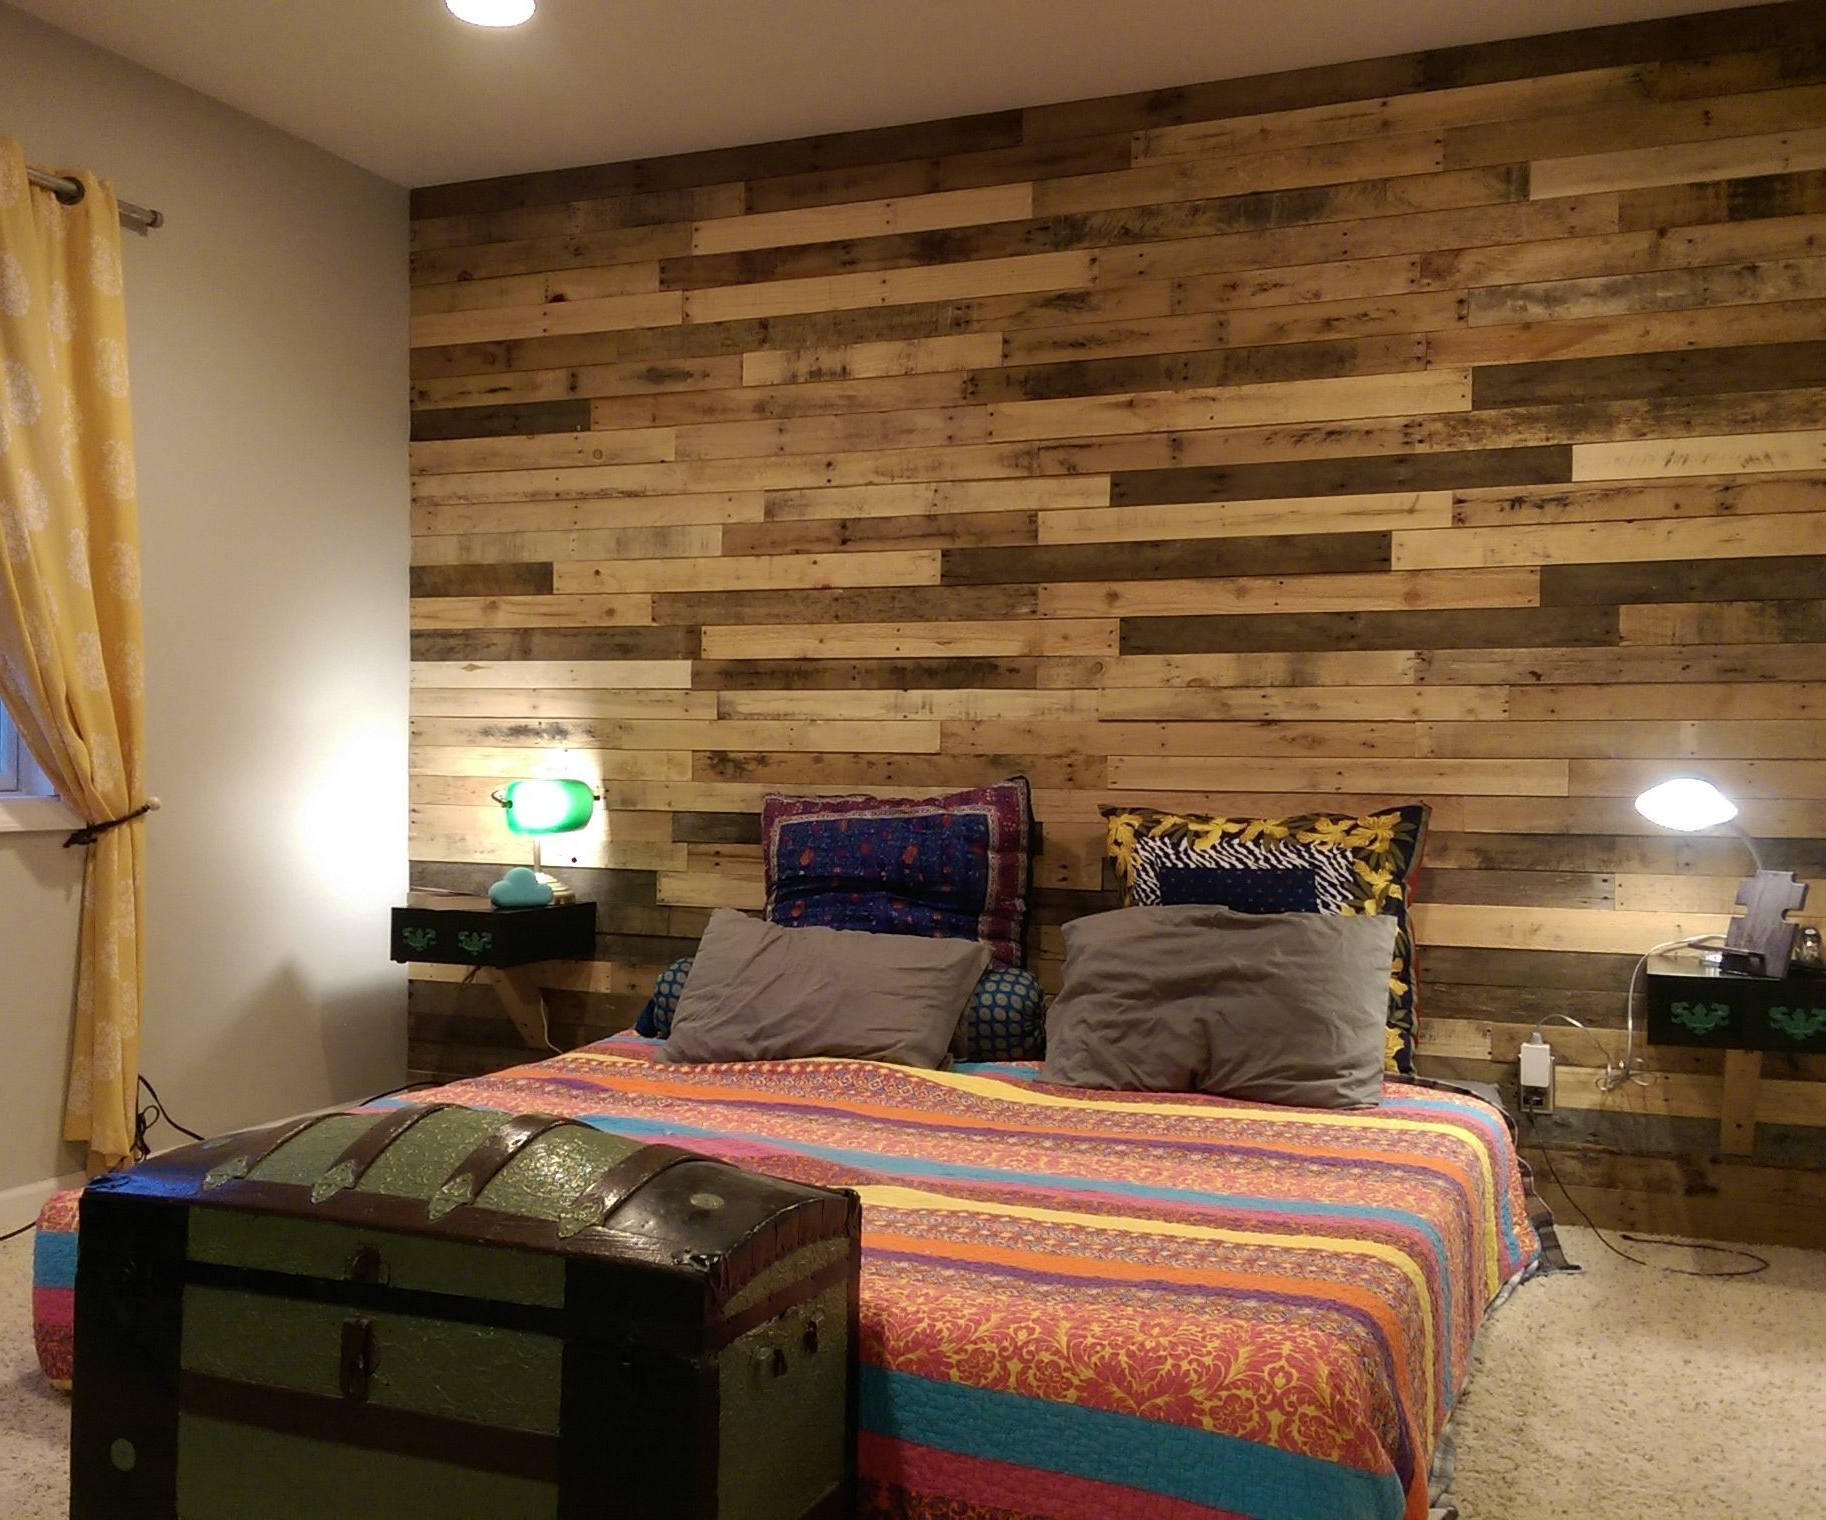 Pallet Accent Wall: 4 Steps (with Pictures) In Best And Newest Wall Accents Made From Pallets (View 2 of 15)